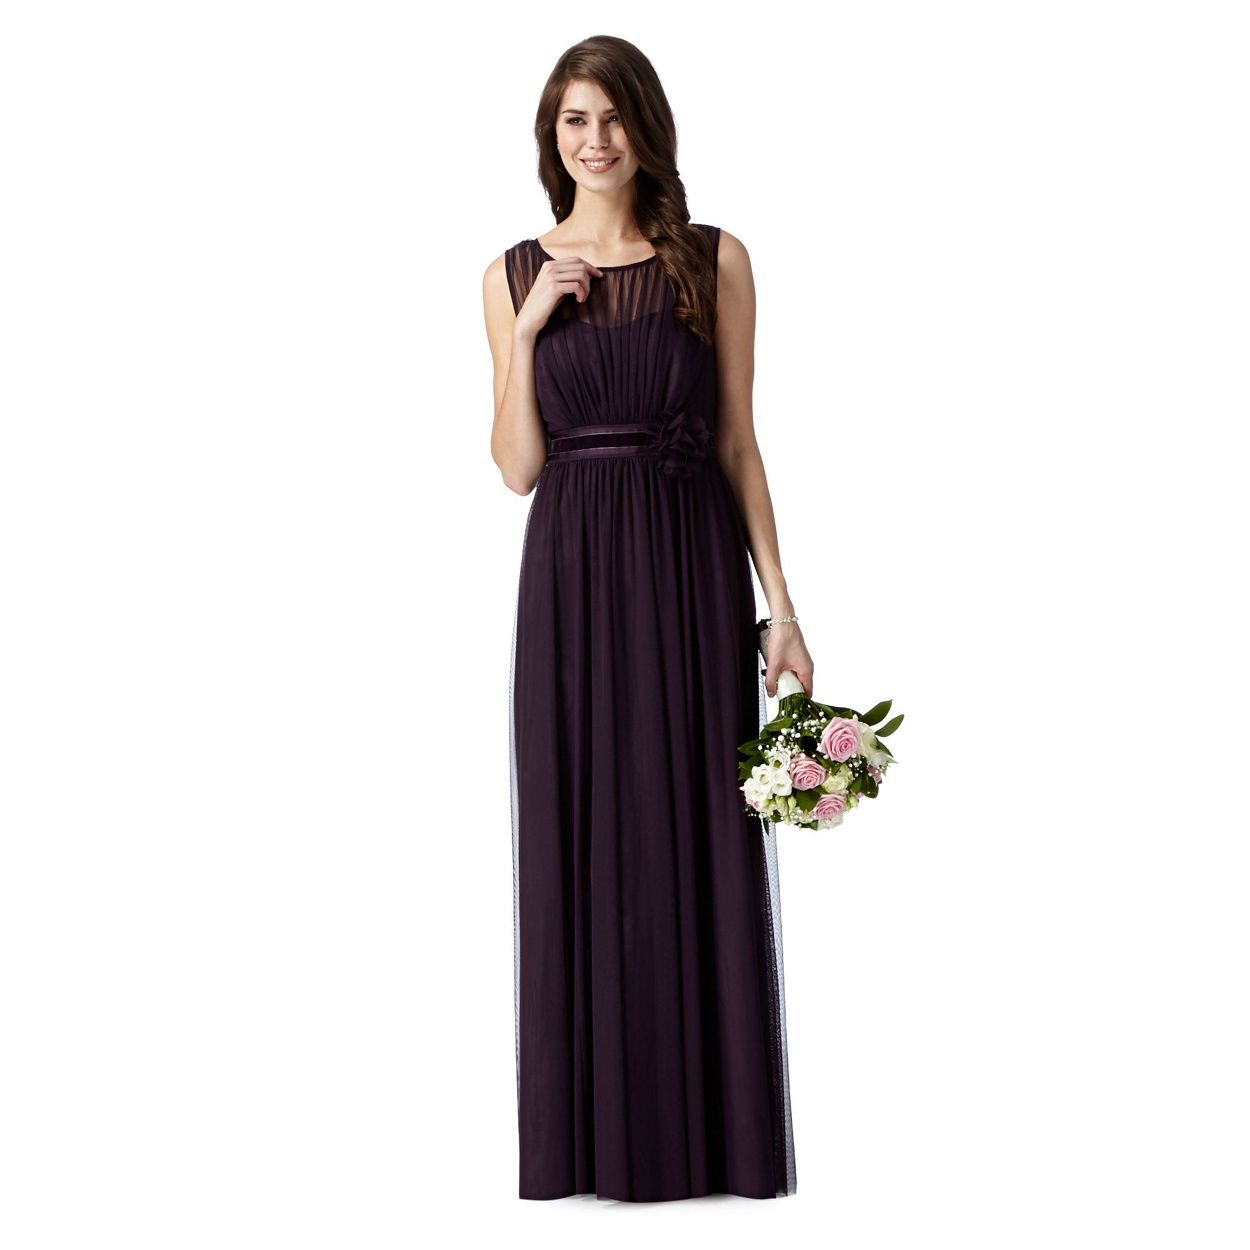 Debut purple mesh corsage maxi dress at debenhams debut purple mesh corsage maxi dress at debenhams purple maxi dressesbridesmaid ideaswedding ombrellifo Gallery